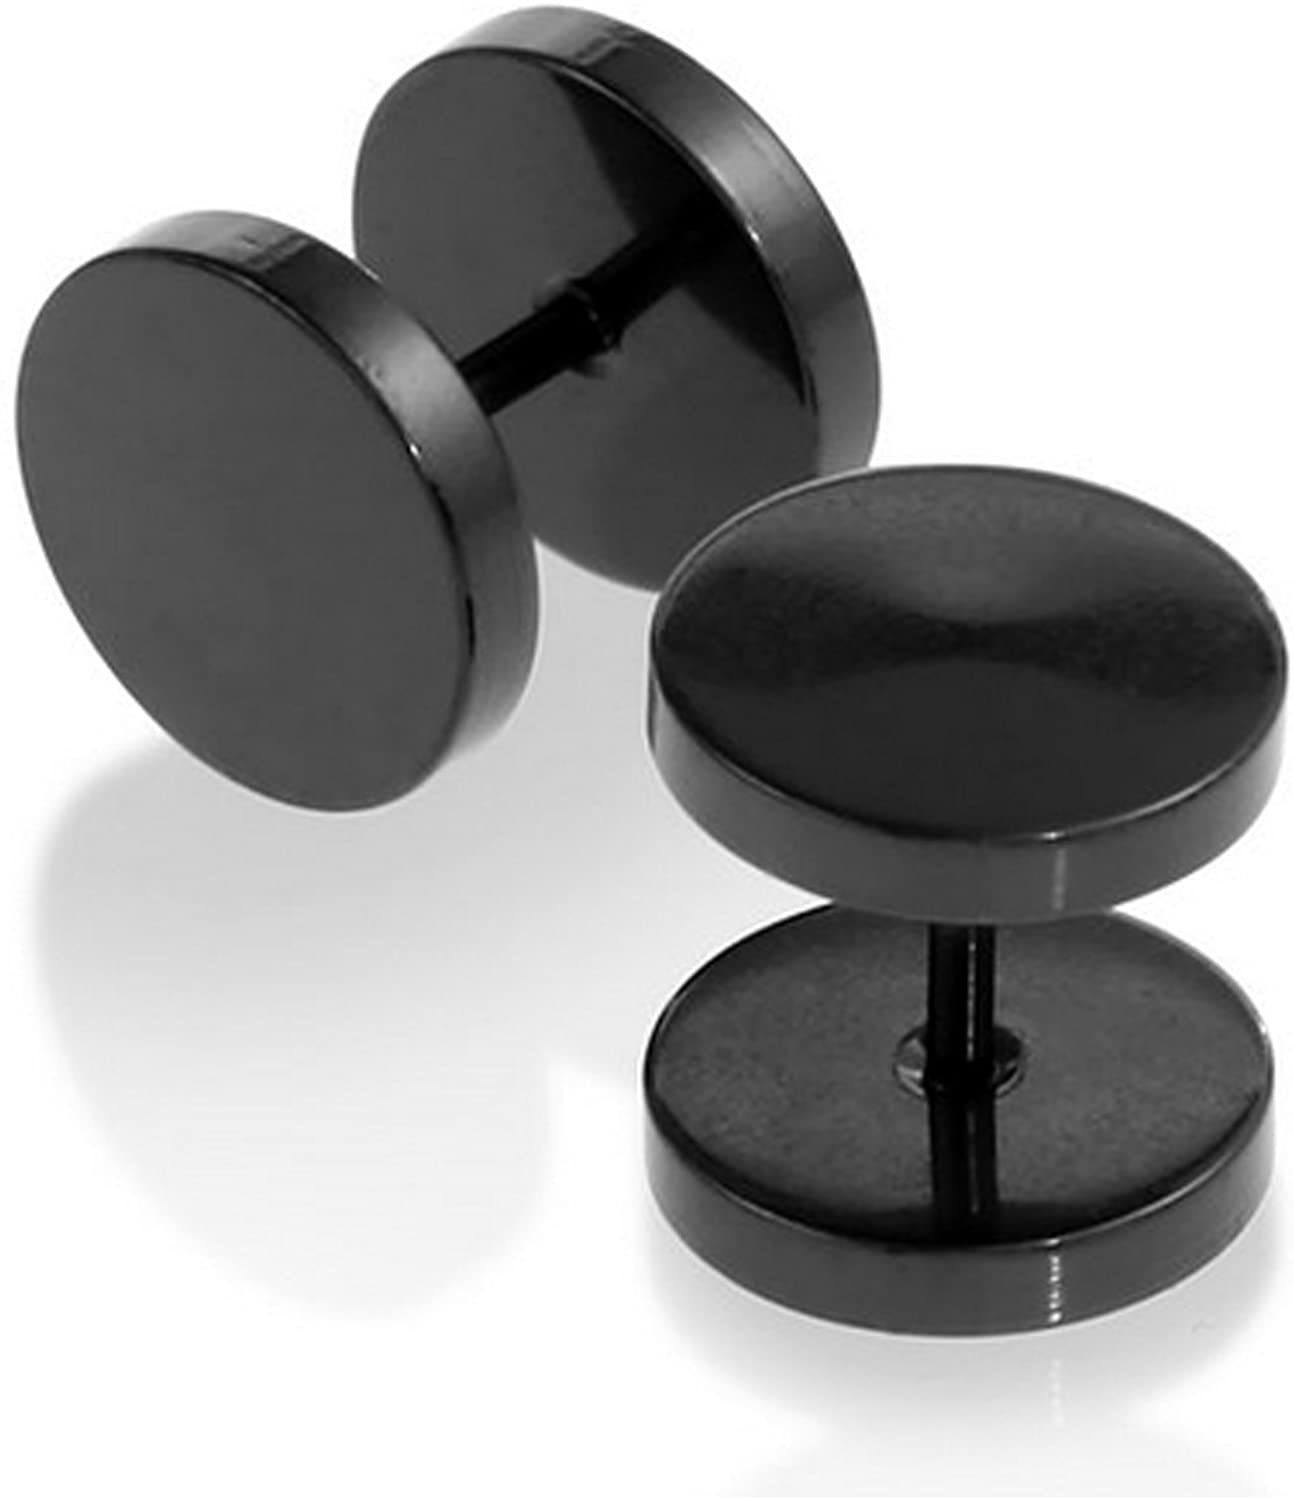 yantu Womens and Mens Black Stainless Steel Illusion Tunnel Plugs Earrings Unisex Cheater Faux Fake Ear Plugs Gauges Barbells 2pcs